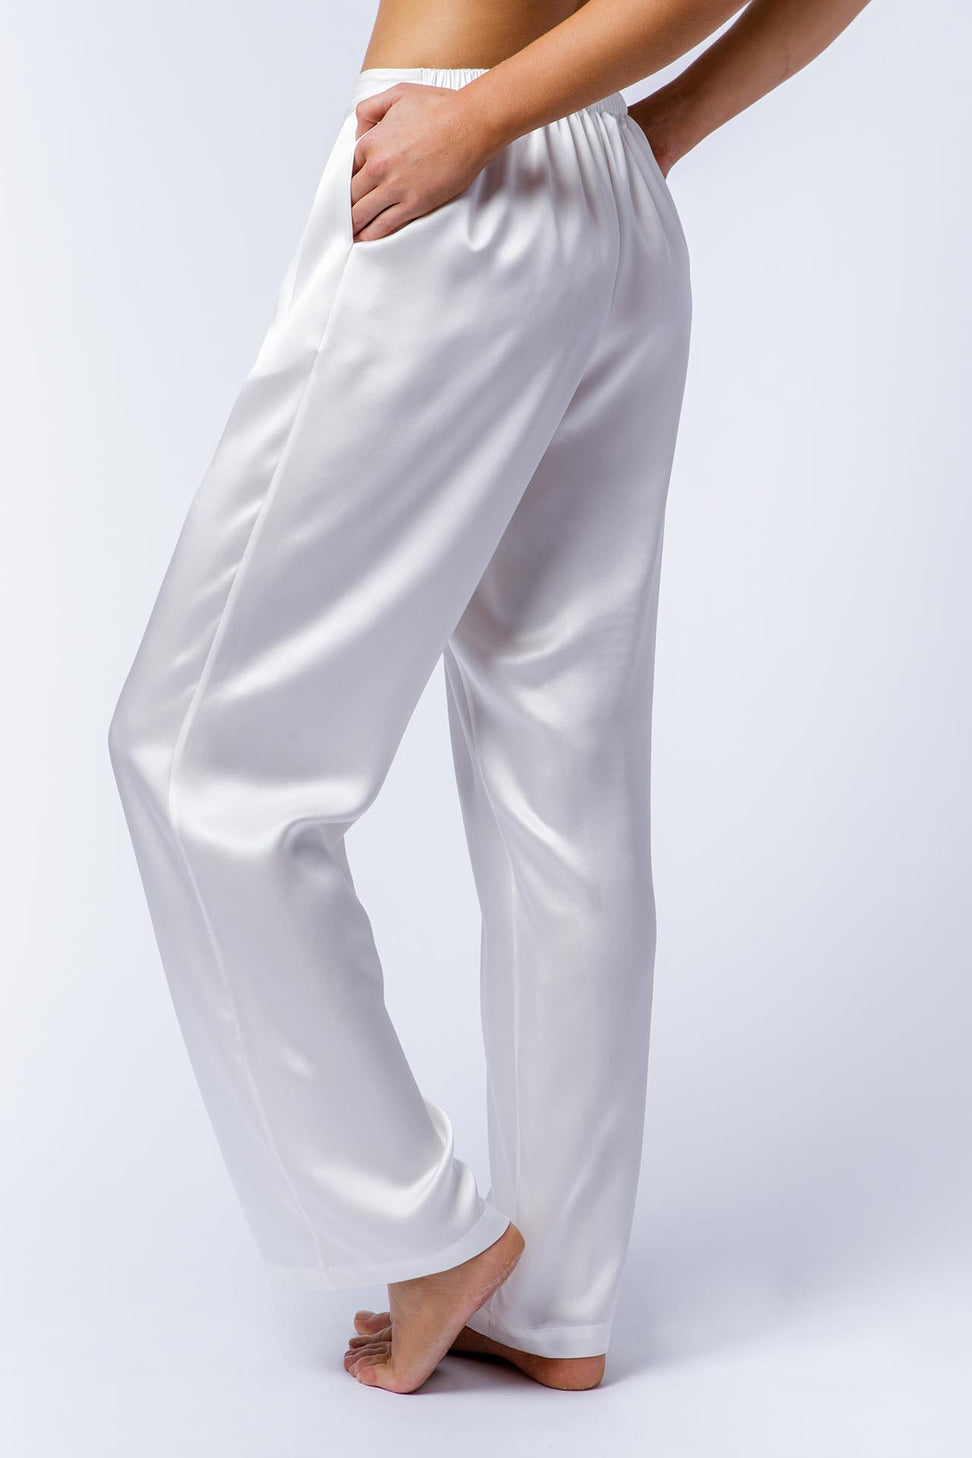 Ann silk pants side view